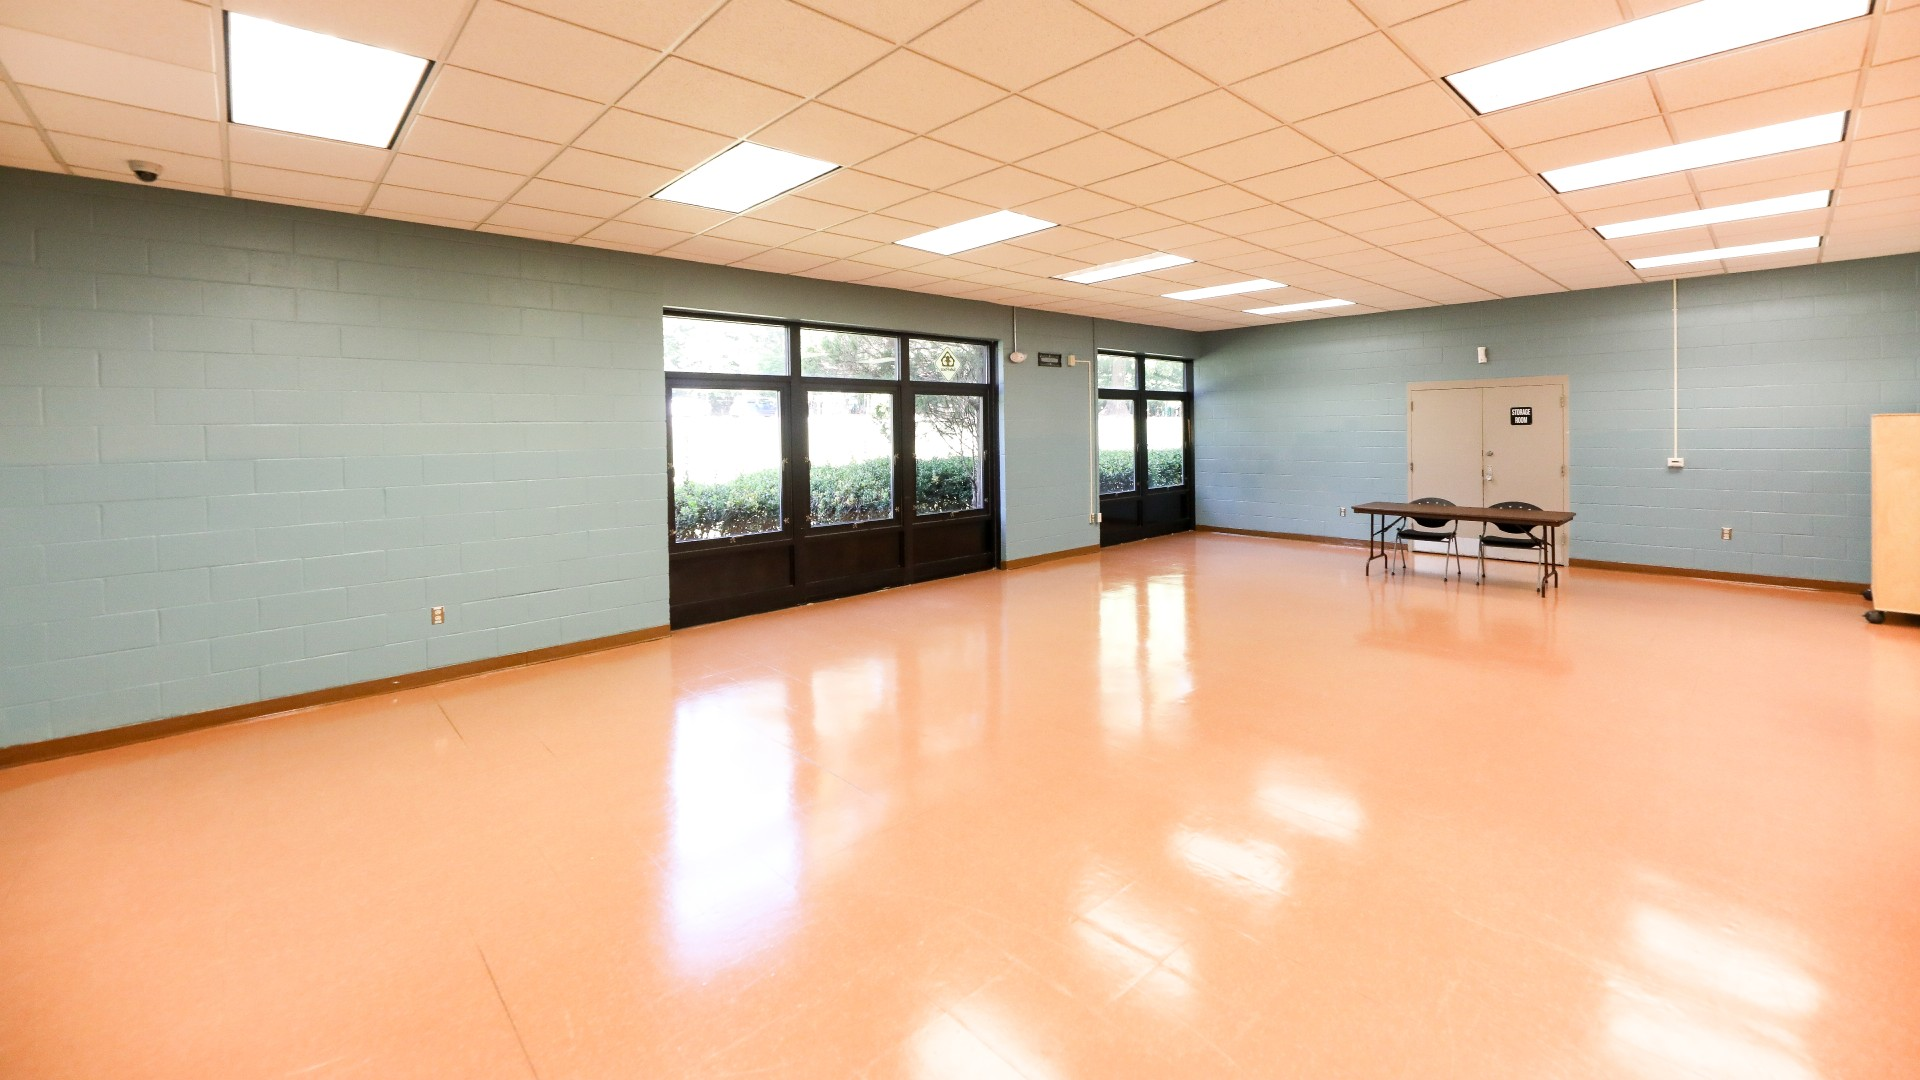 A large open room with room for classes, meetings or games